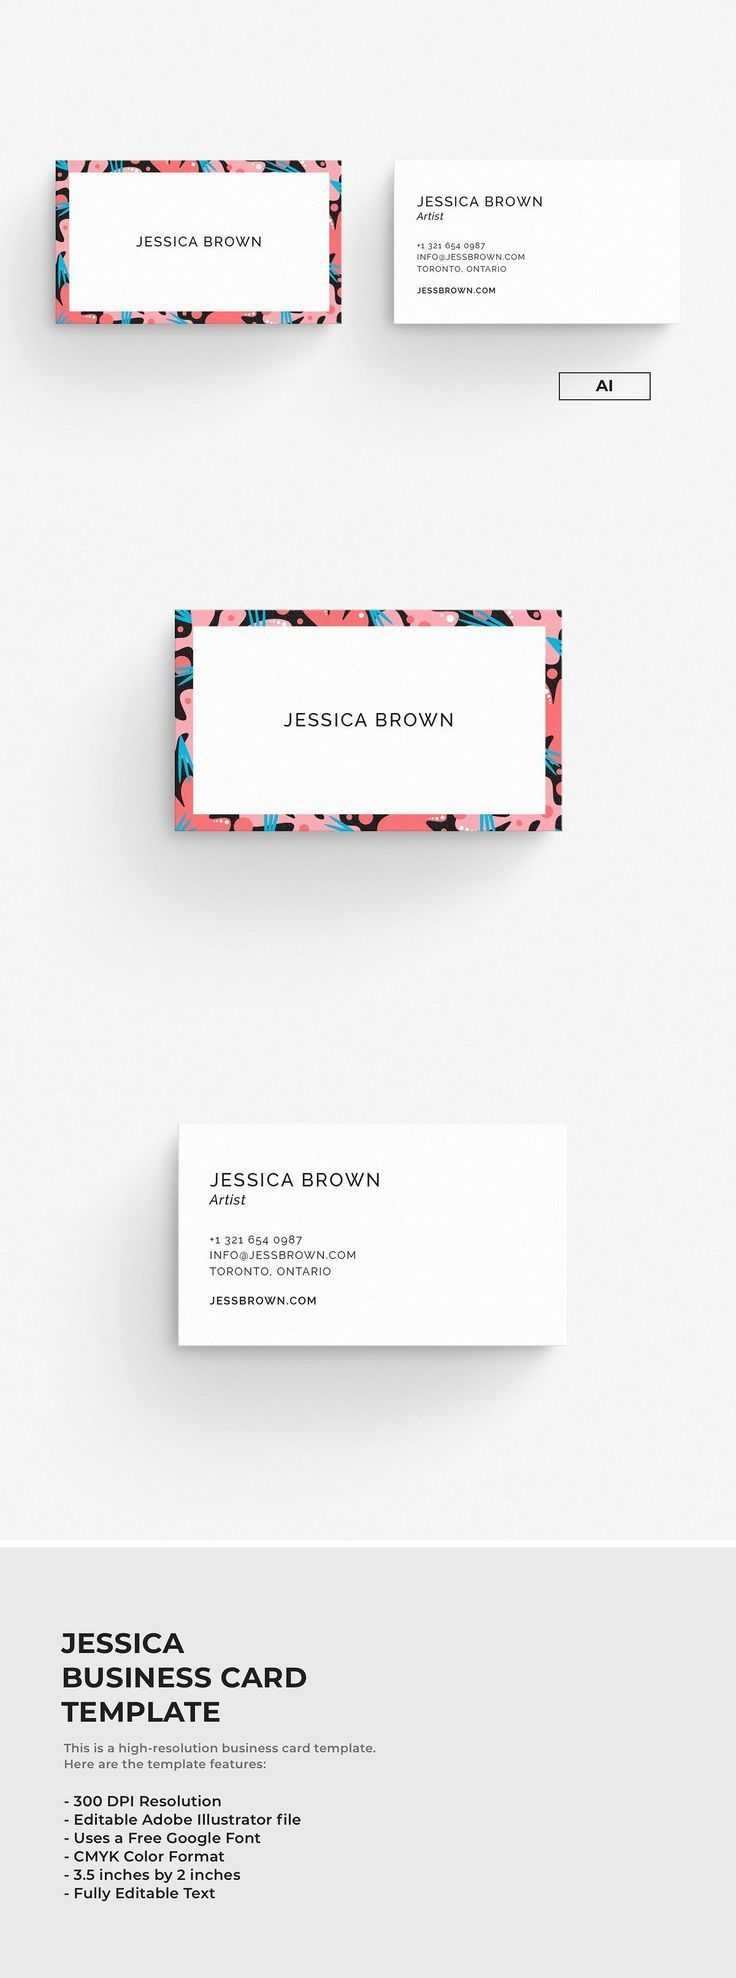 Illustrator Business Card Jessica Business Card Template With Adobe Illustrato In 2020 Graphic Design Business Card Business Card Graphic Illustration Business Cards